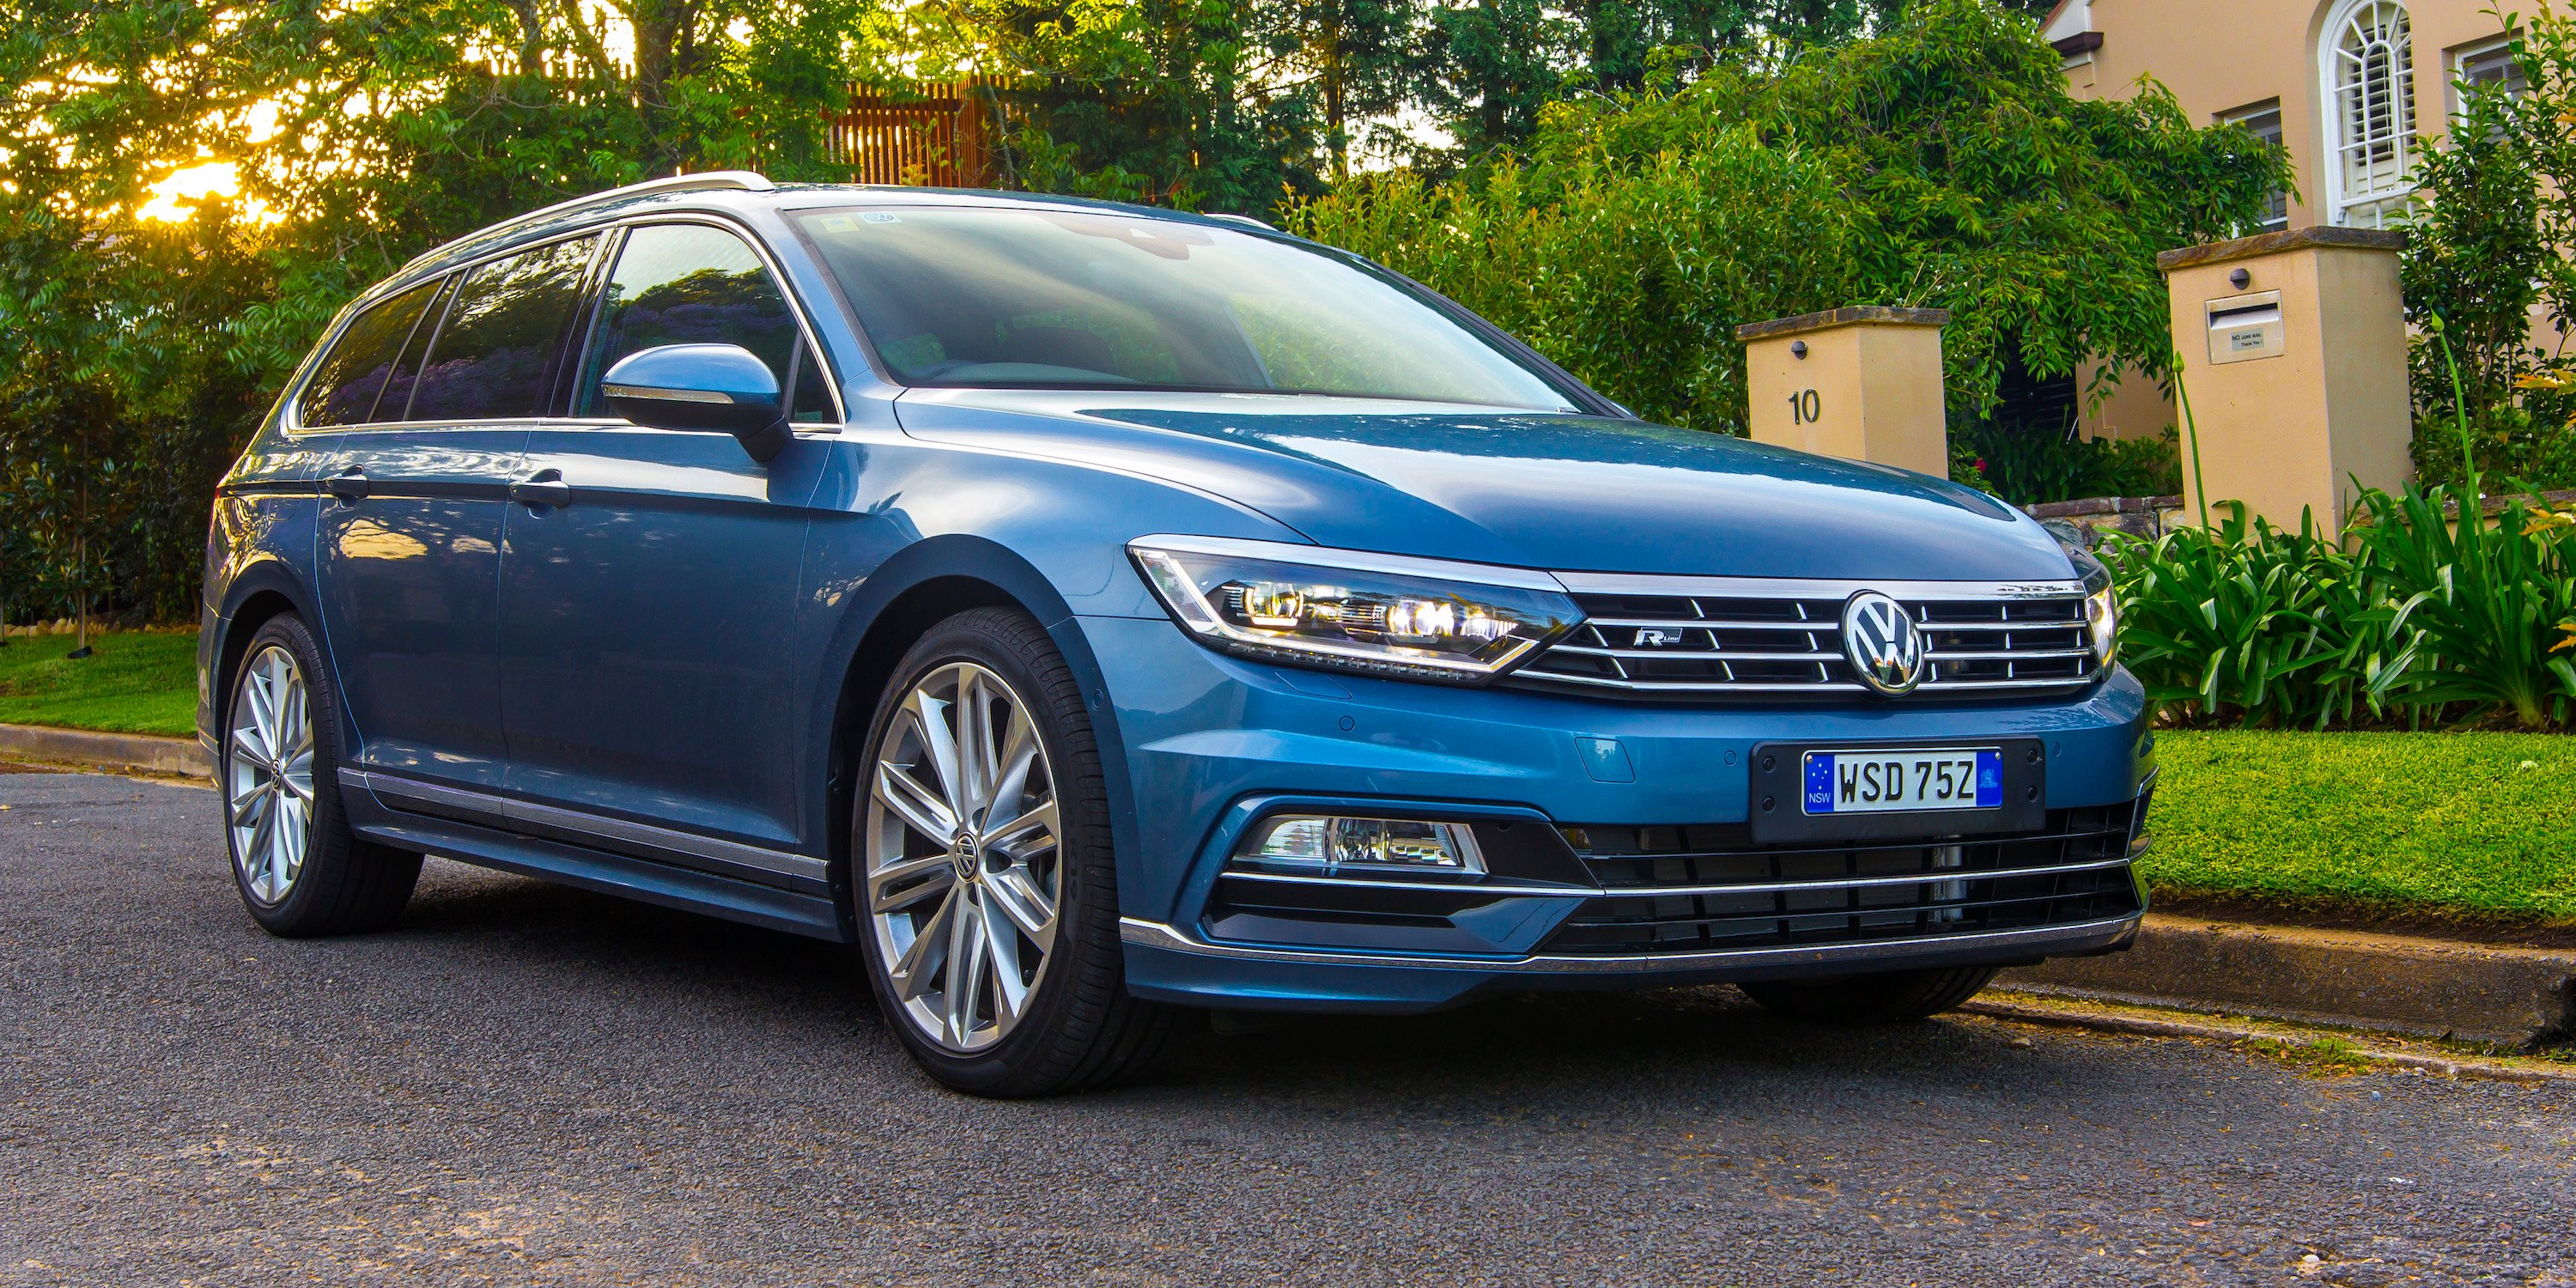 2017 volkswagen passat 206tsi r line pricing and specs available october 17 update photos. Black Bedroom Furniture Sets. Home Design Ideas